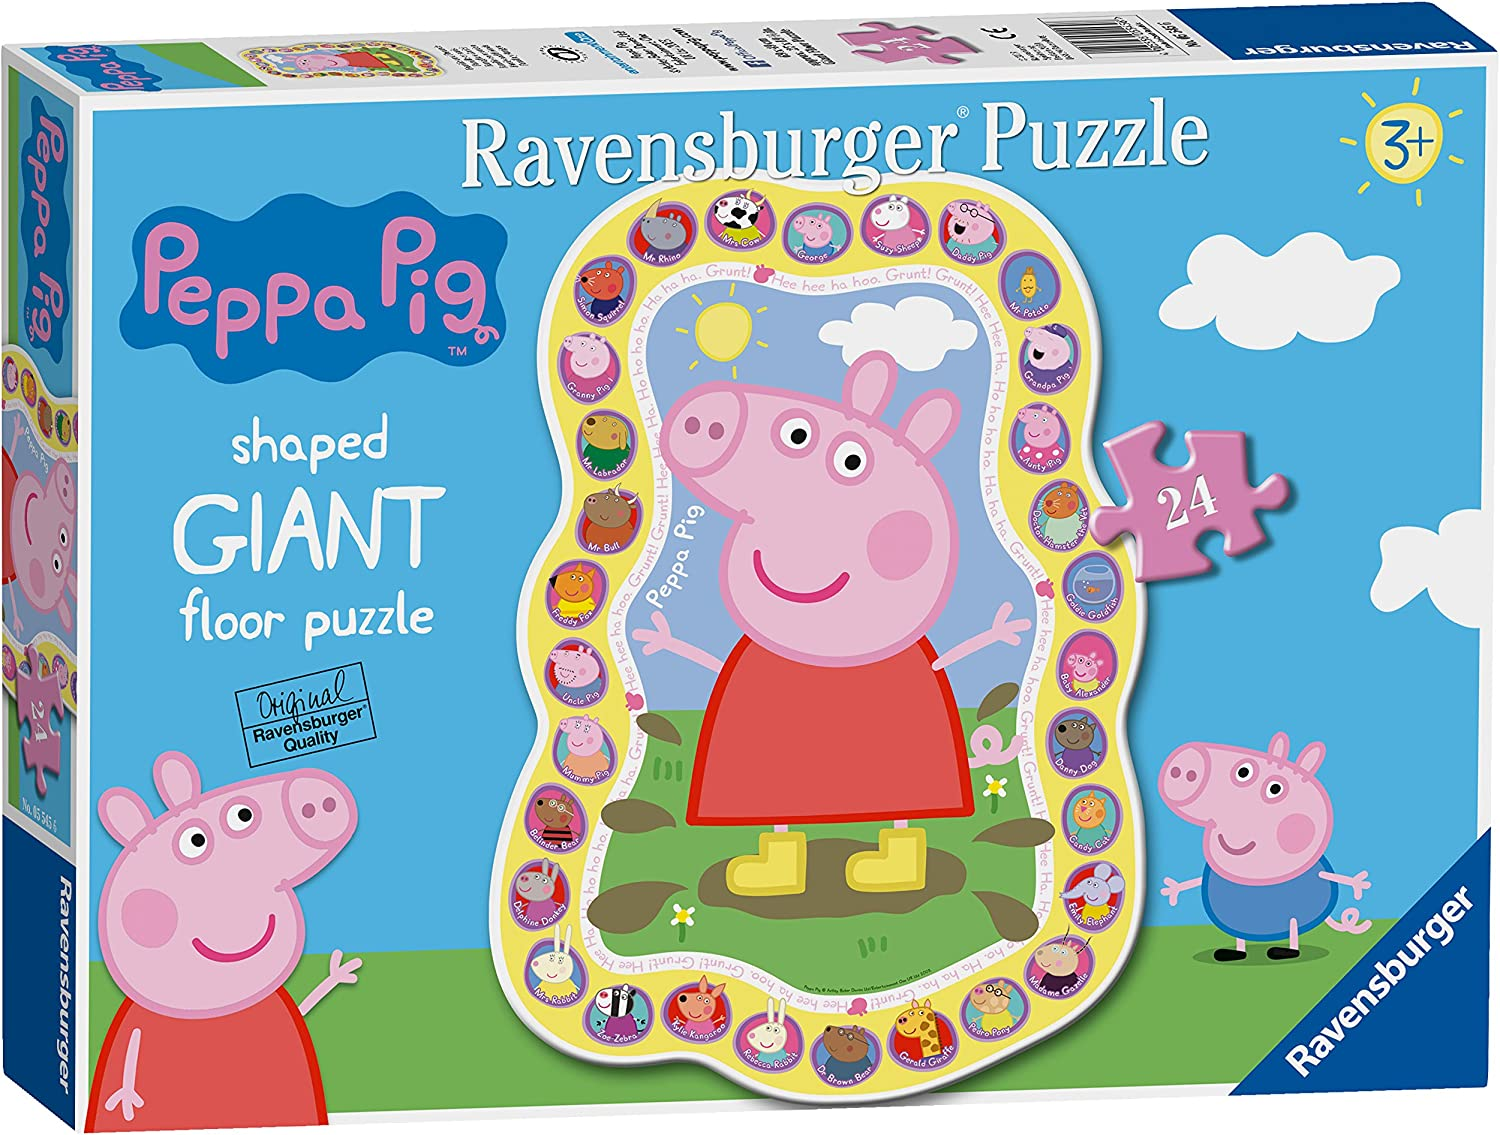 NEW Ravensburger Peppa Pig Family Celebrations 24 piece giant floor puzzle 3+